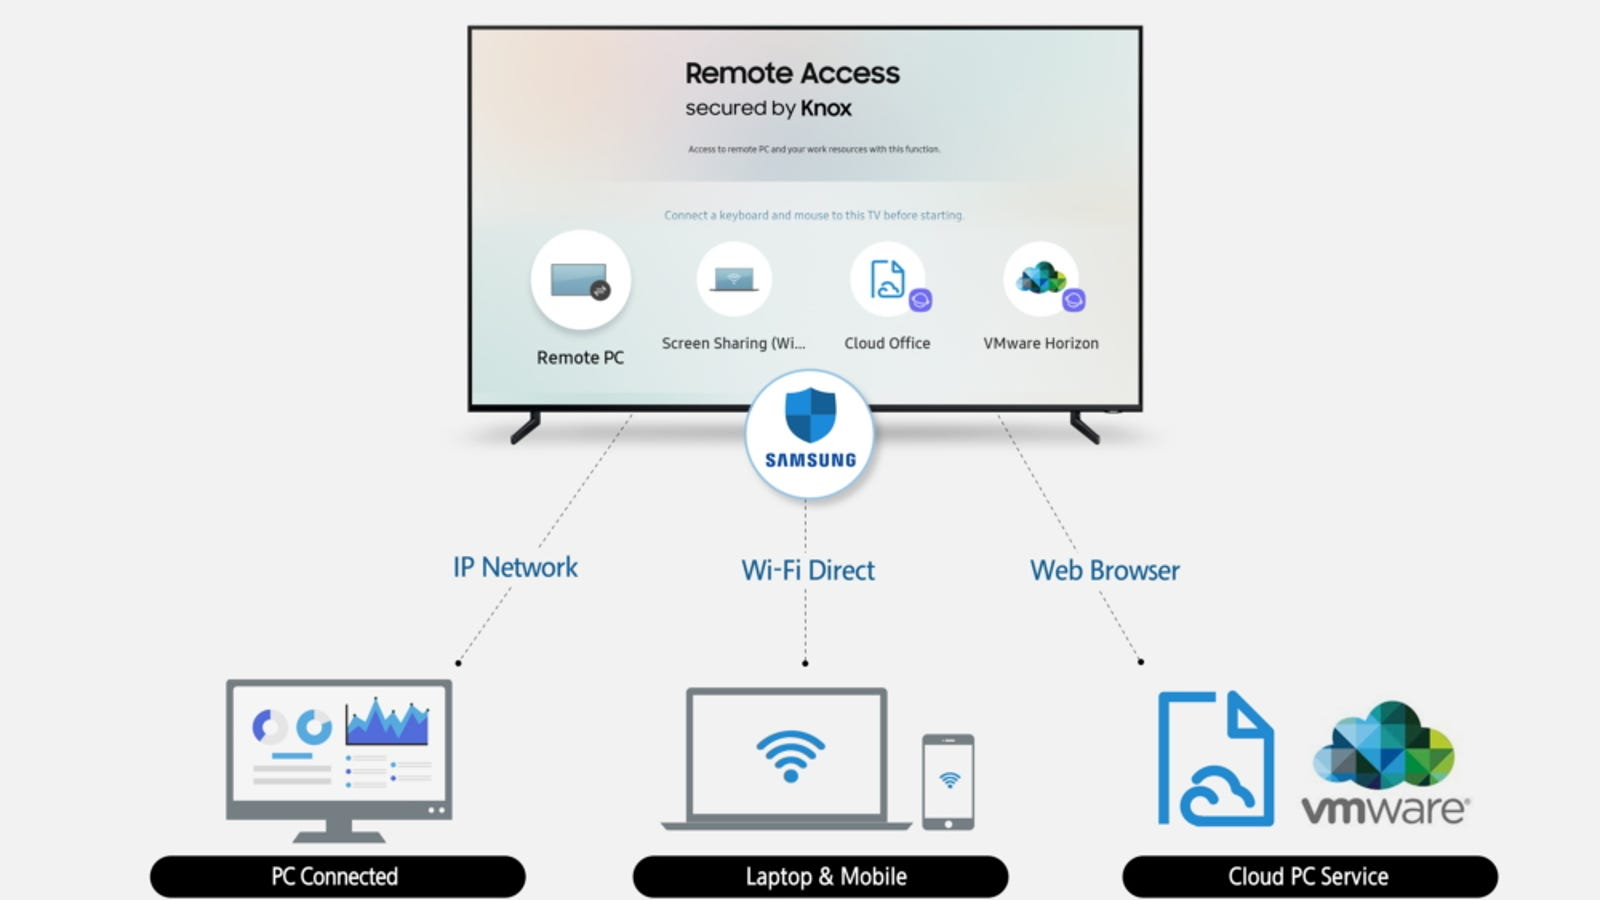 Samsung's Remote Access Feature Sounds Like Chromecast on Steroids